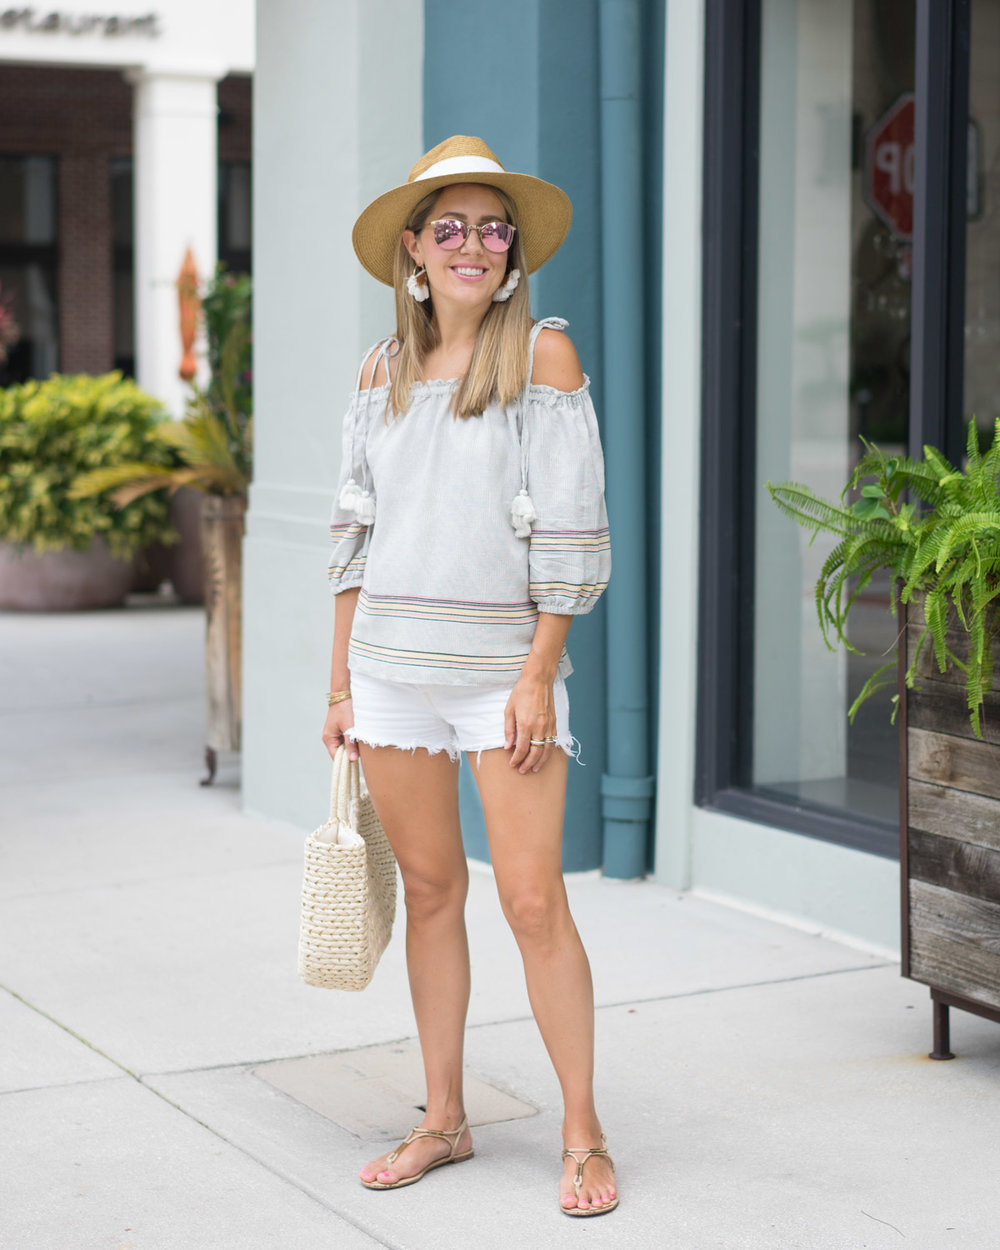 Off shoulder top, white shorts, straw hat and bag